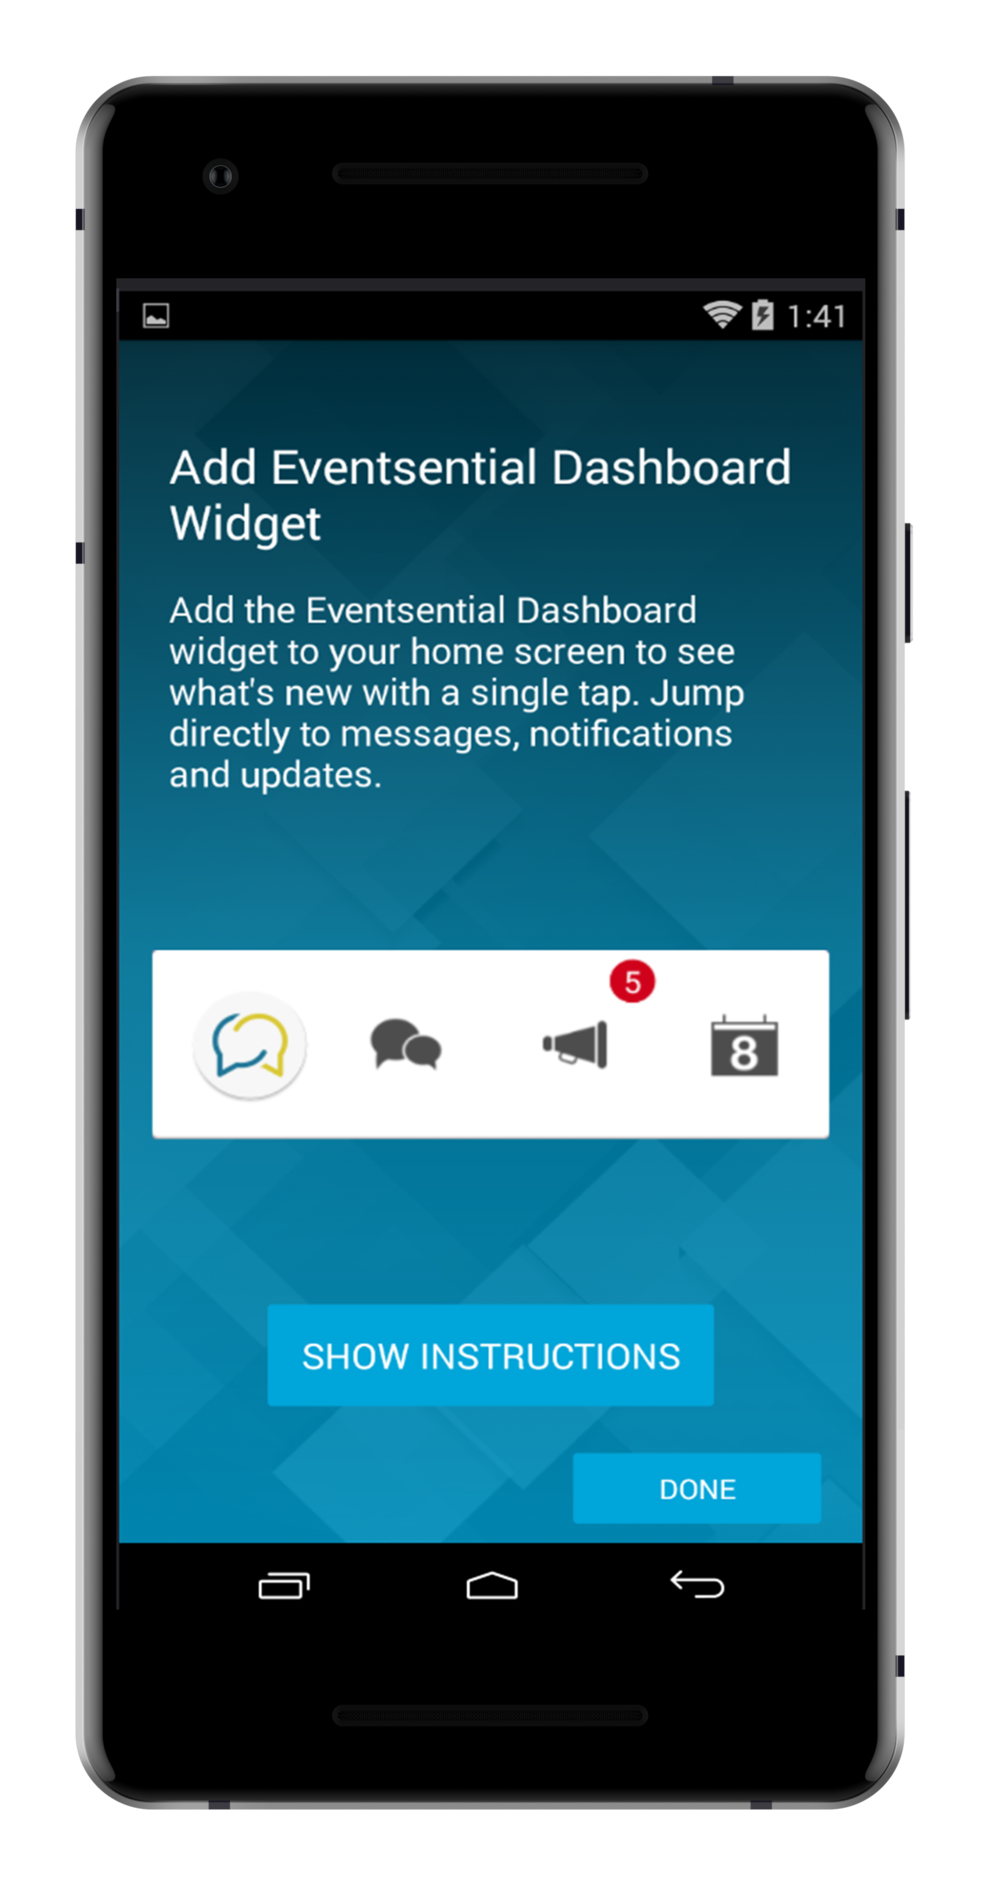 step 4. - OPTIONALCHOOSE WHETHER OR NOT YOU'D LIKE ADD THE APP WIDGET TO YOUR MOBILE DEVICES DASHBOARD.